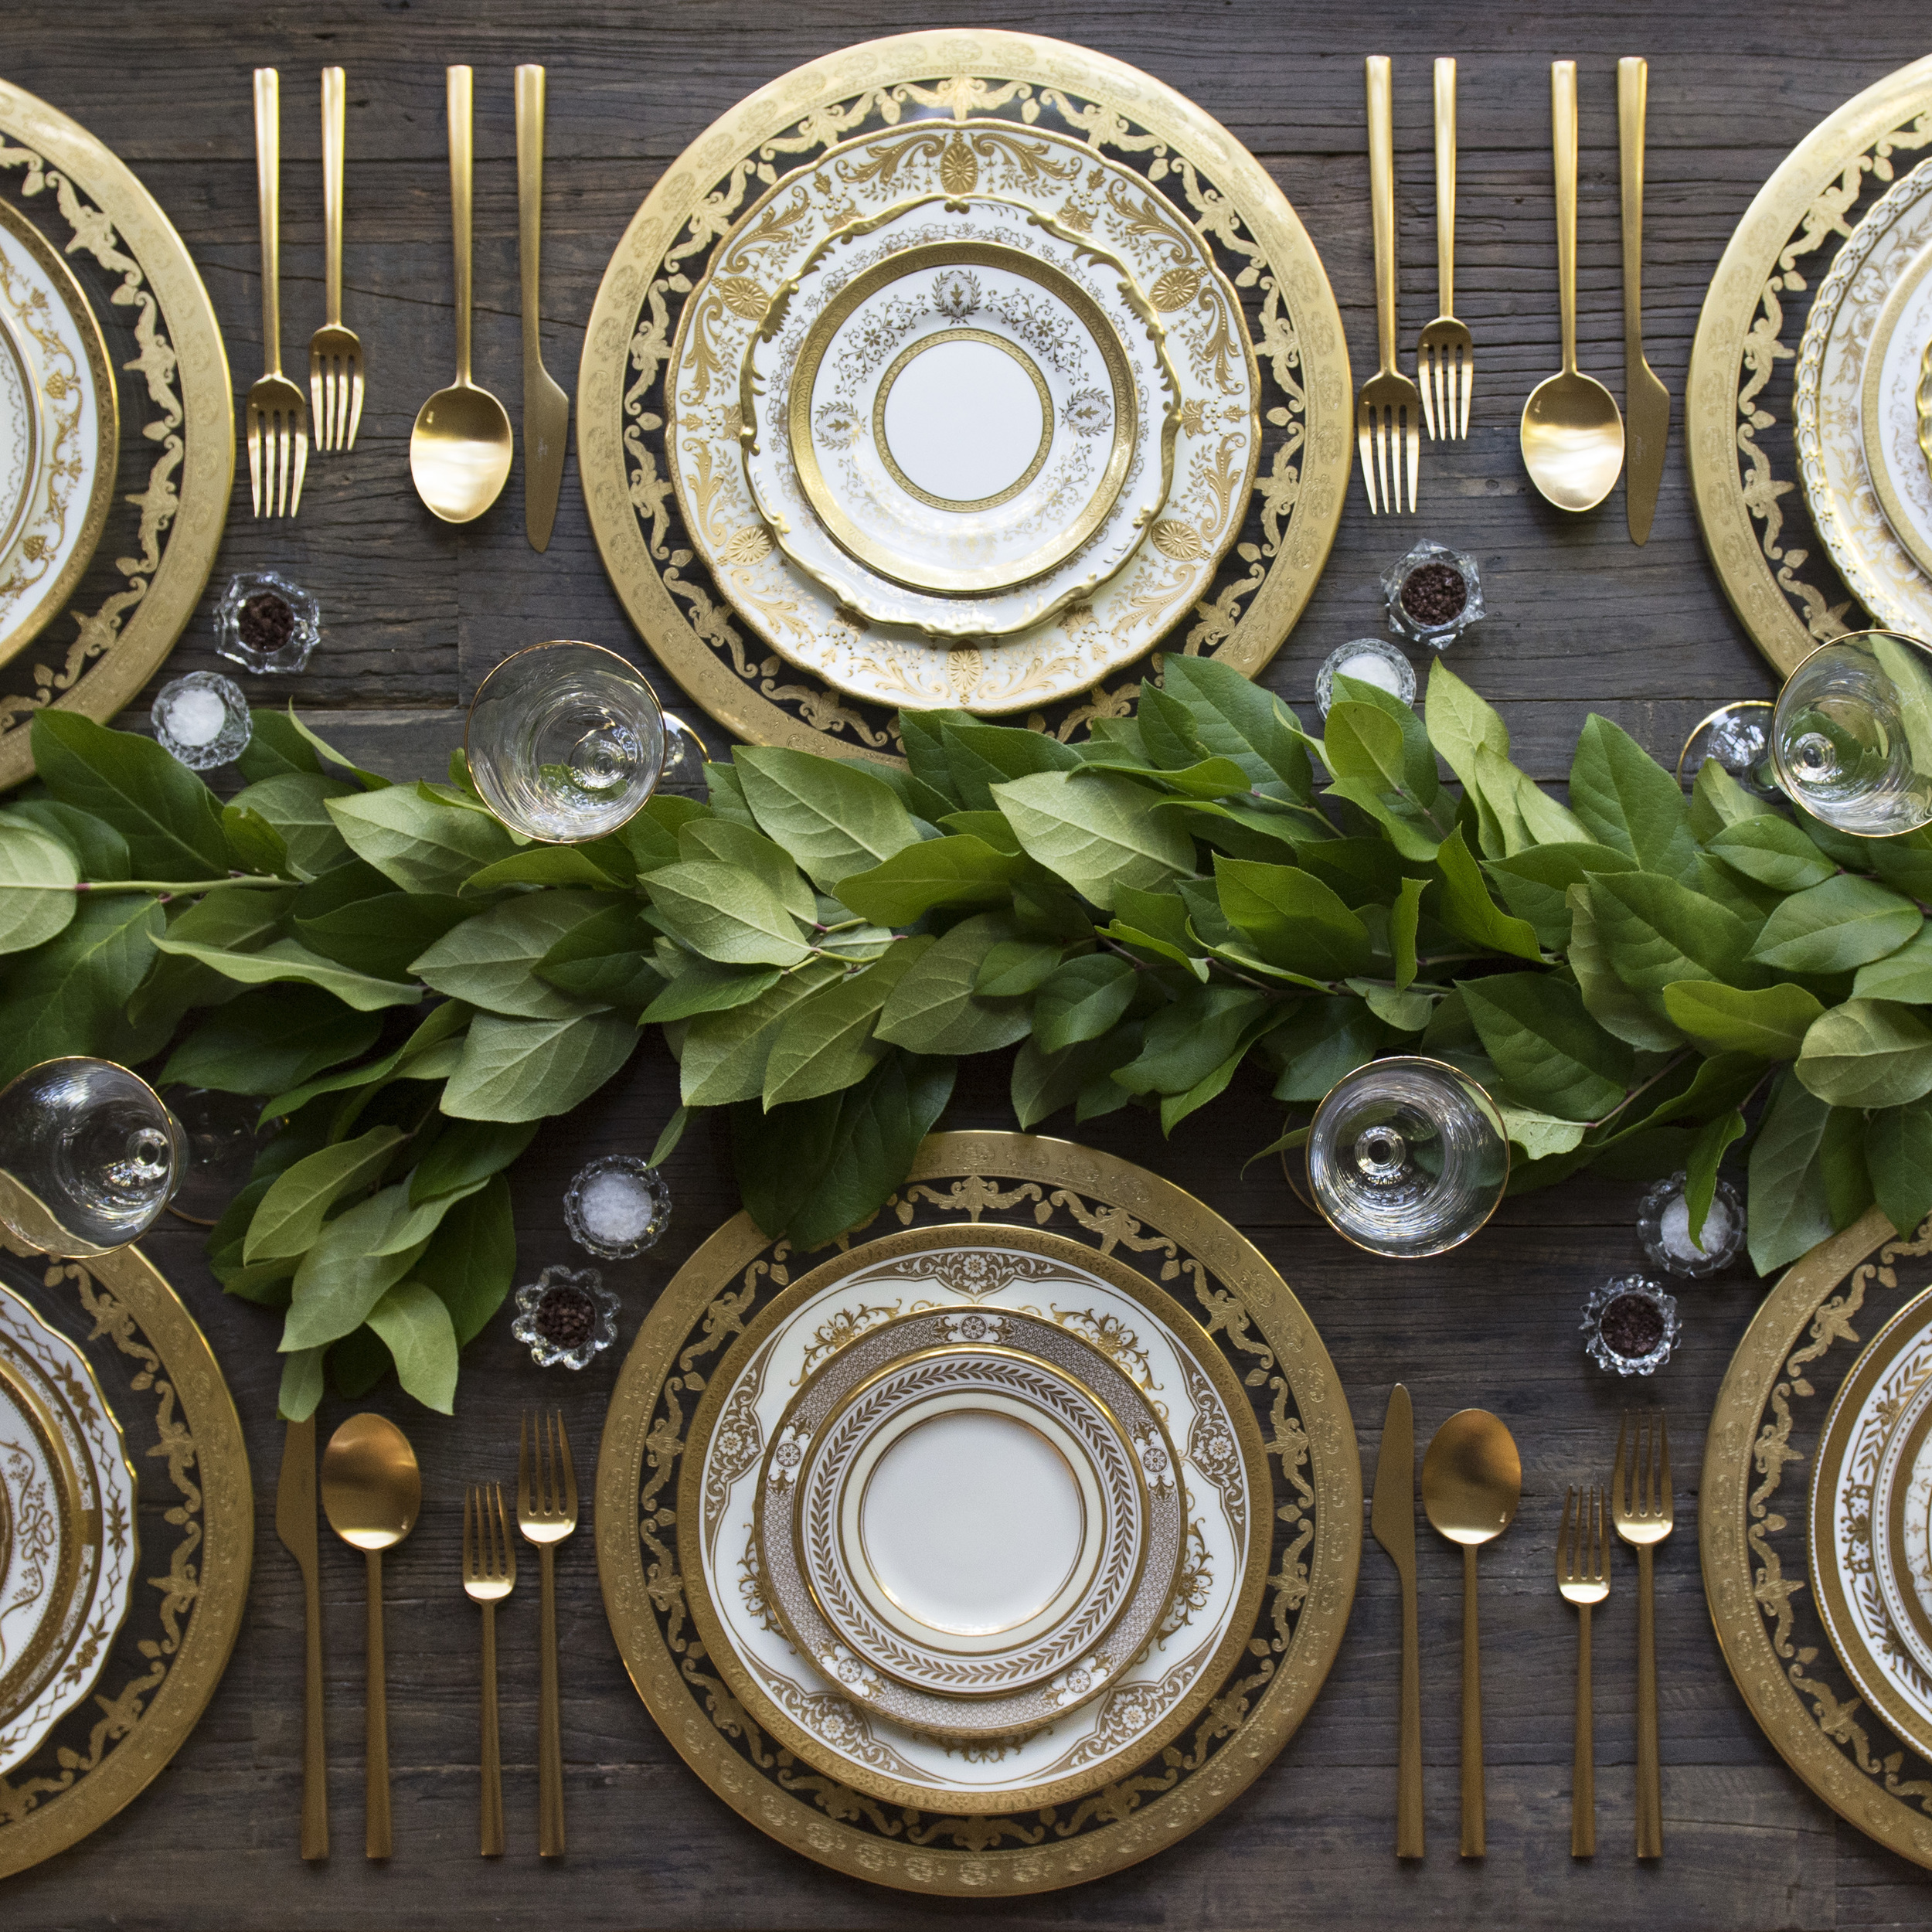 RENT: Versailles Glass Chargers in 24k Gold + Crown Gold Collection Vintage China + Rondo Flatware in Brushed 24k Gold + Chloe 24k Gold Rimmed Stemware + Antique Crystal Salt Cellars   SHOP: Rondo Flatware in Brushed 24k Gold + Chloe 24k Gold Rimmed Stemware